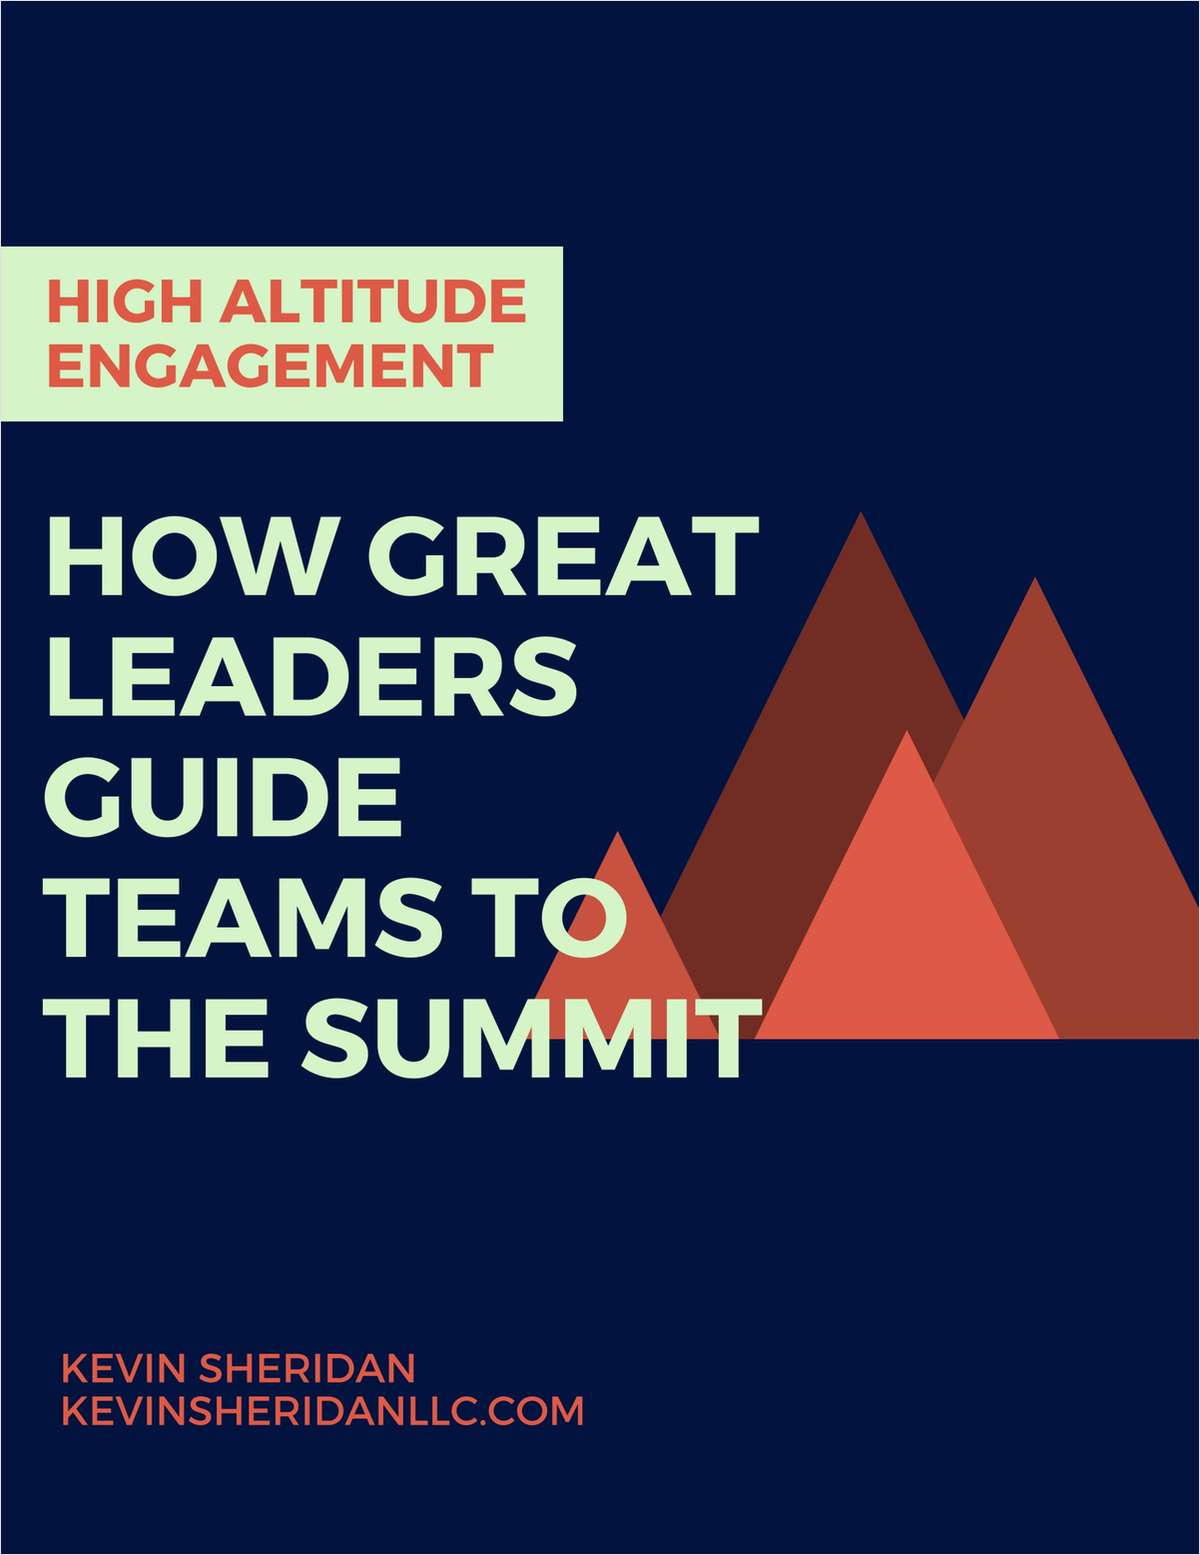 High Altitude Engagement - How Great Leaders Guide Teams to the Summit